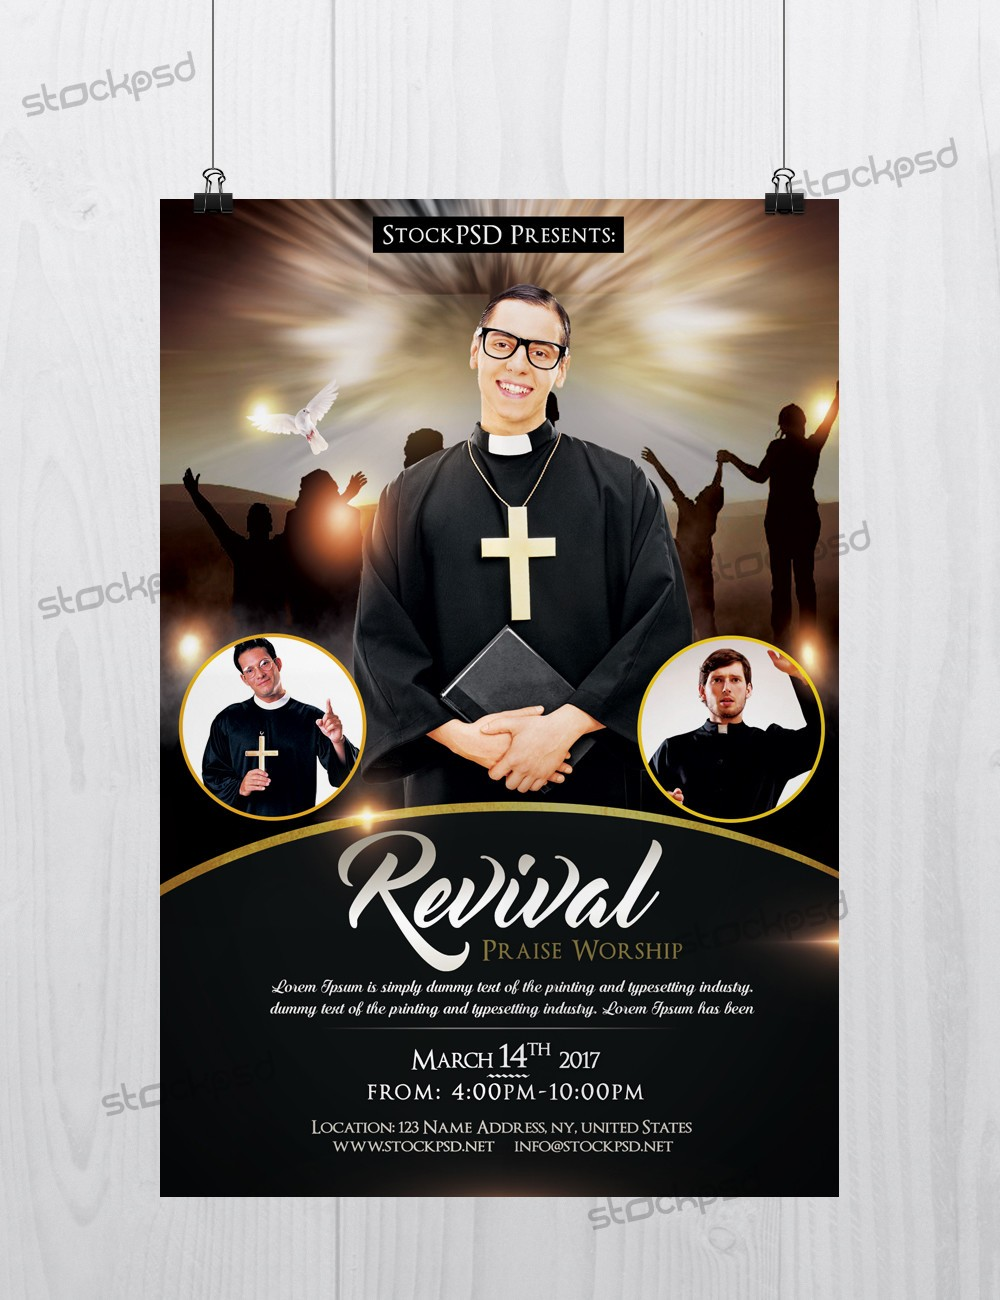 Stockpsd Freebie Templates Revival Church Pastor Freebie